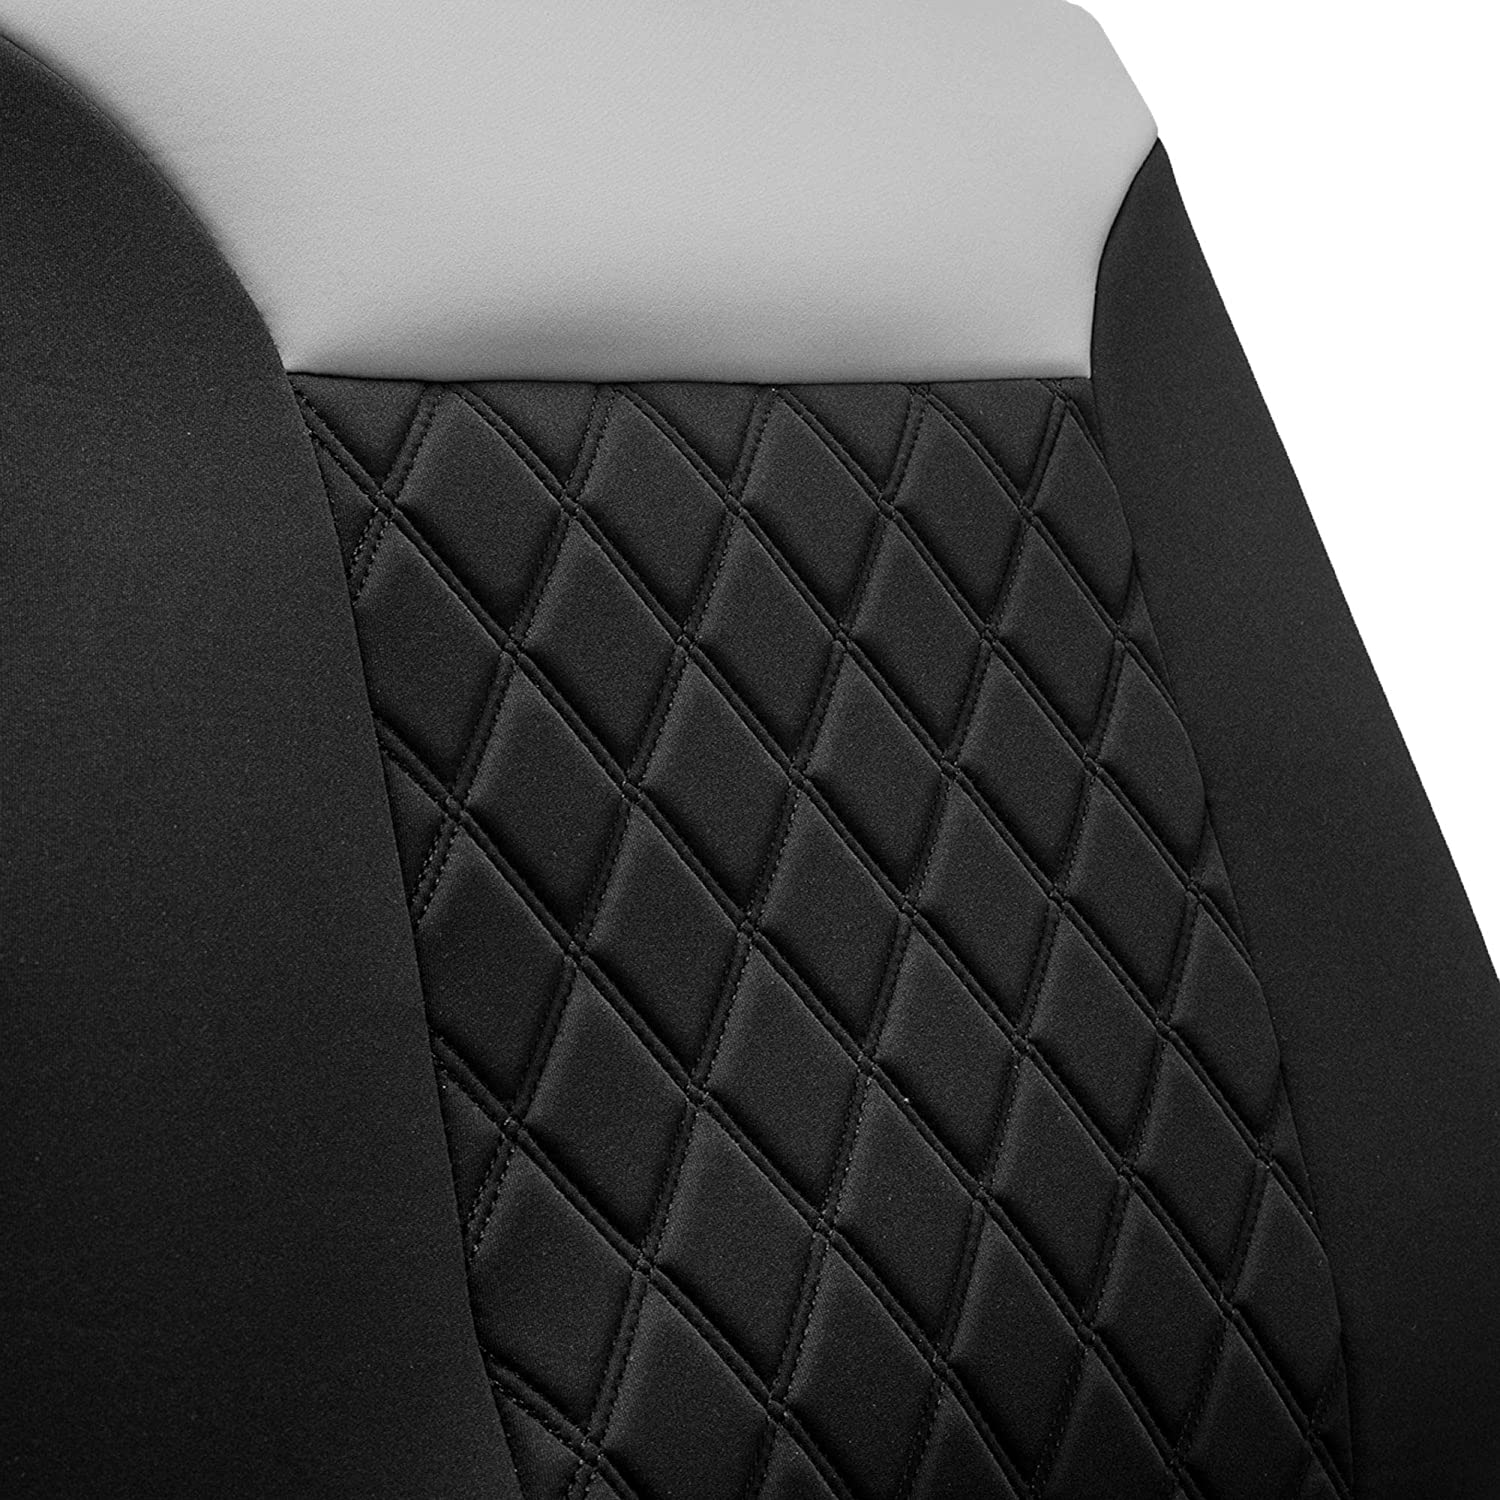 Water Resistant FH Group FB089GRAYBLACK102 Neosupreme Car Seat Cushion Set of Two Front Bucket Covers Quality Gray//Black Easy Installation Non-Slip Backing